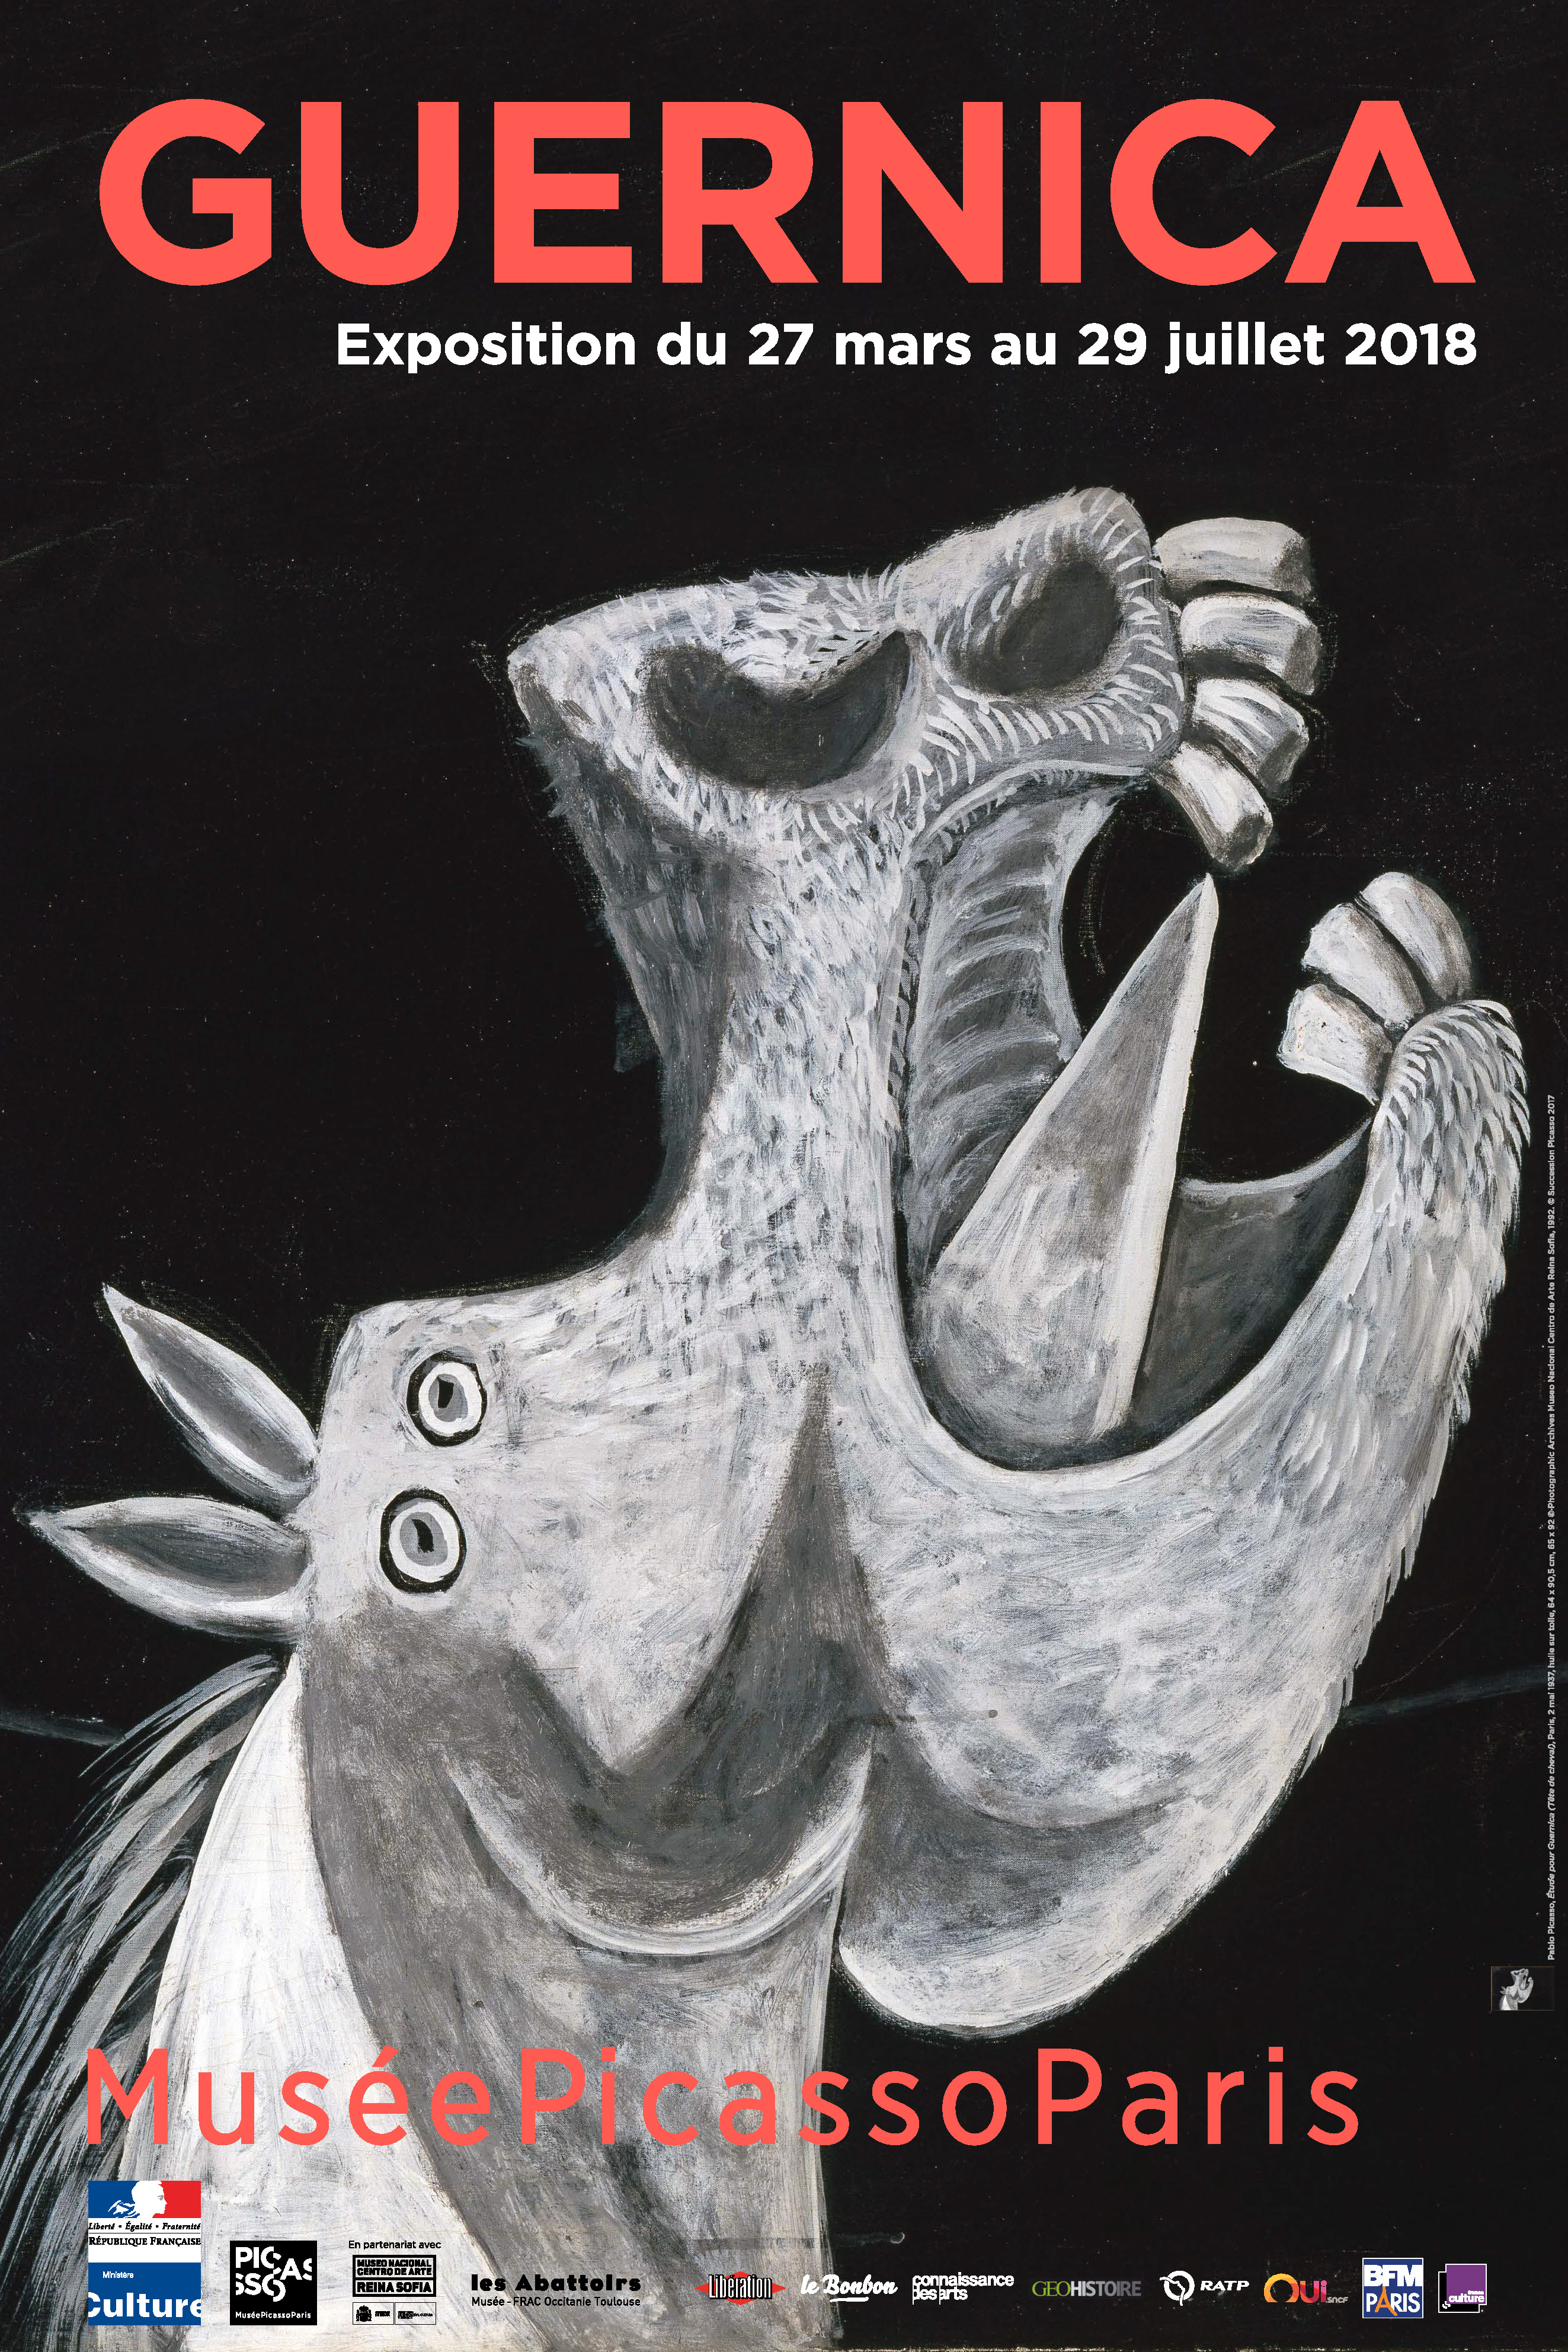 Exposition Guernica%252C Musée national Picasso-Paris Musée national Picasso-Paris Philippe Fuzeau